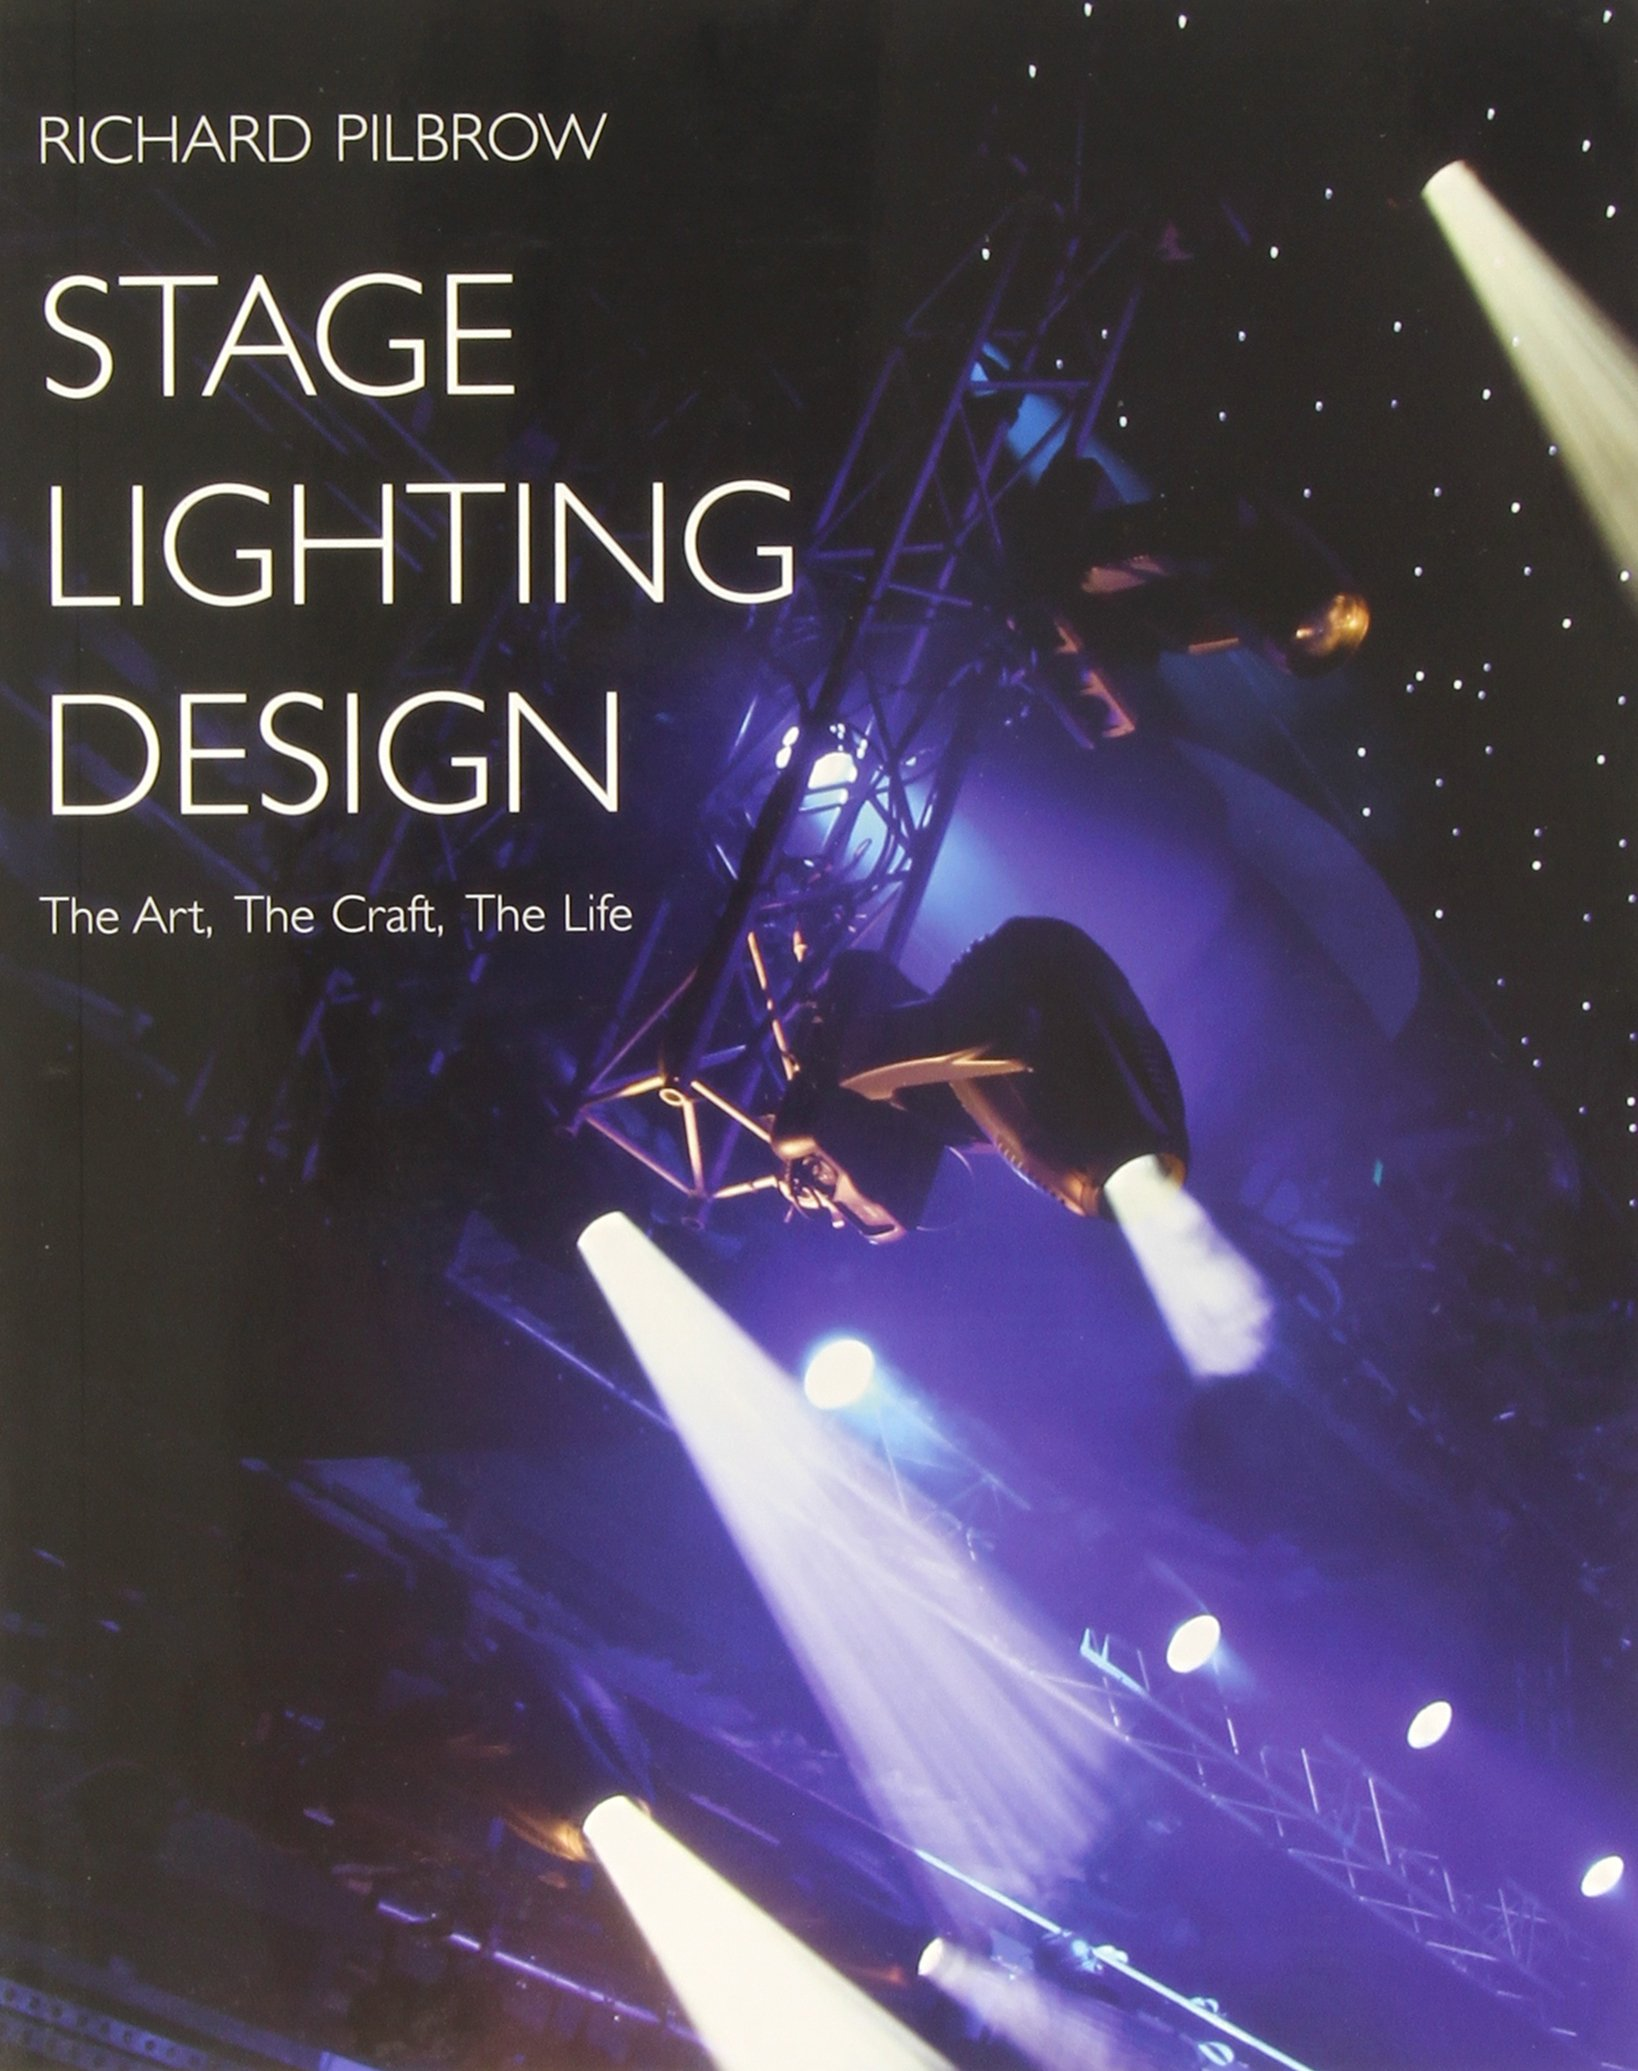 stage lighting design the art the craft the life richard pilbrow